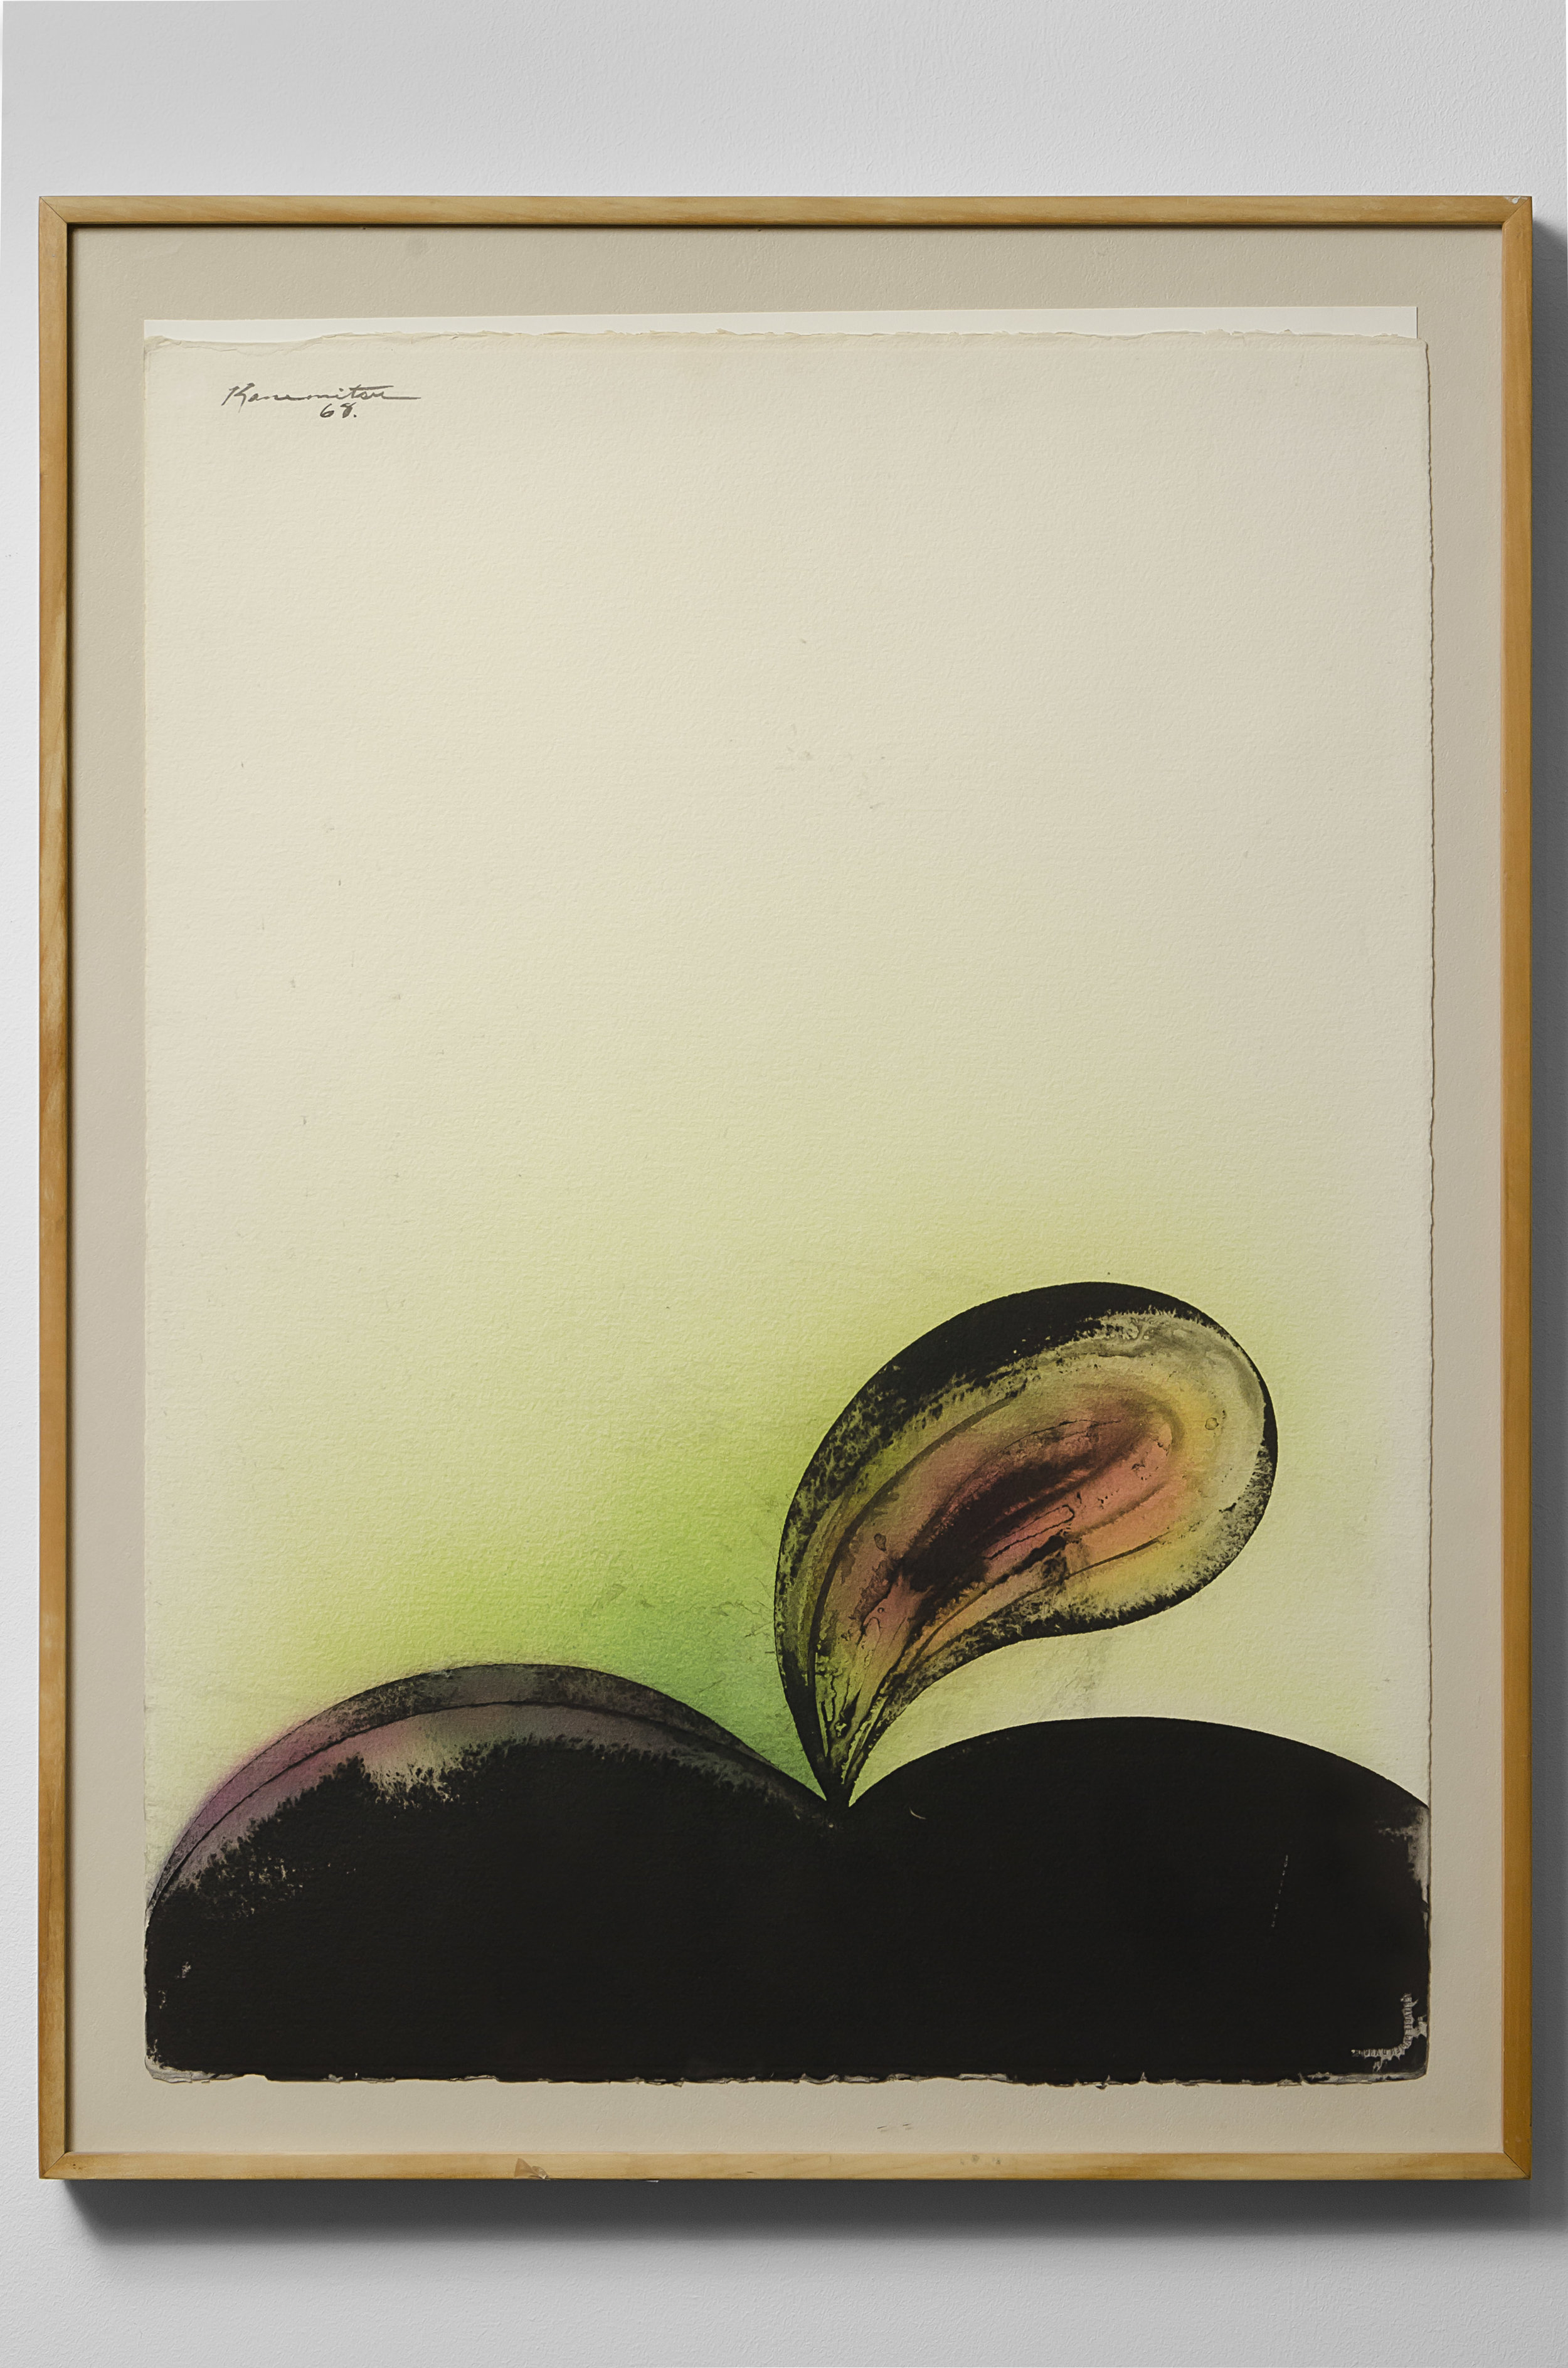 Morning Series #16 , 1968 watercolor and sumi ink on paper 30.5 x 22.5 inches; 77.5 x 57.2 centimeters